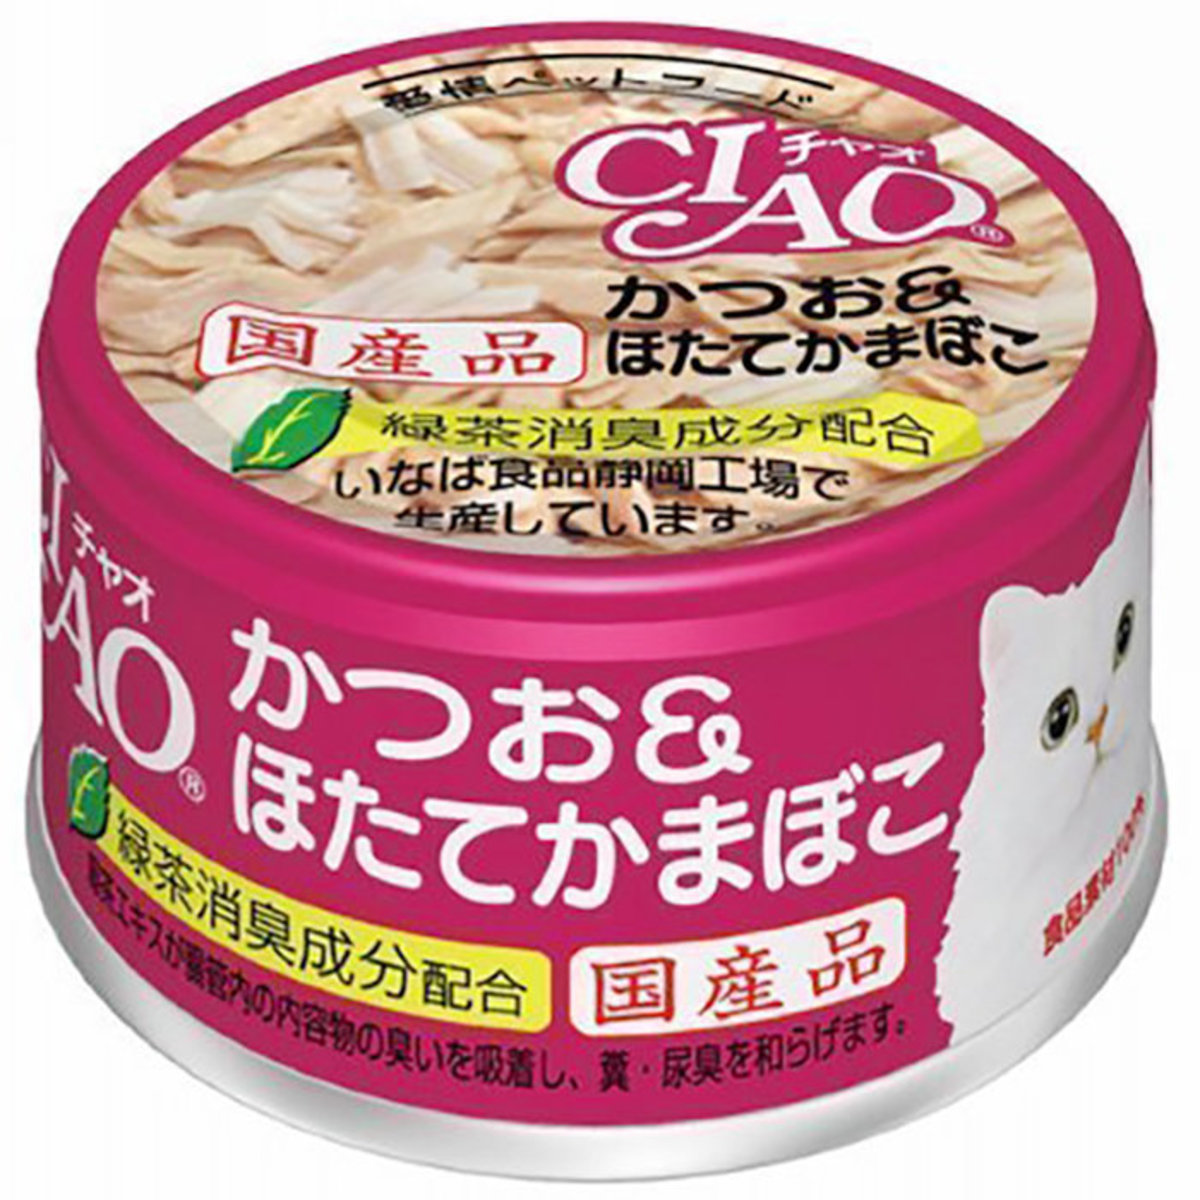 Canned Cat Ciao Bonito Scallop 85g